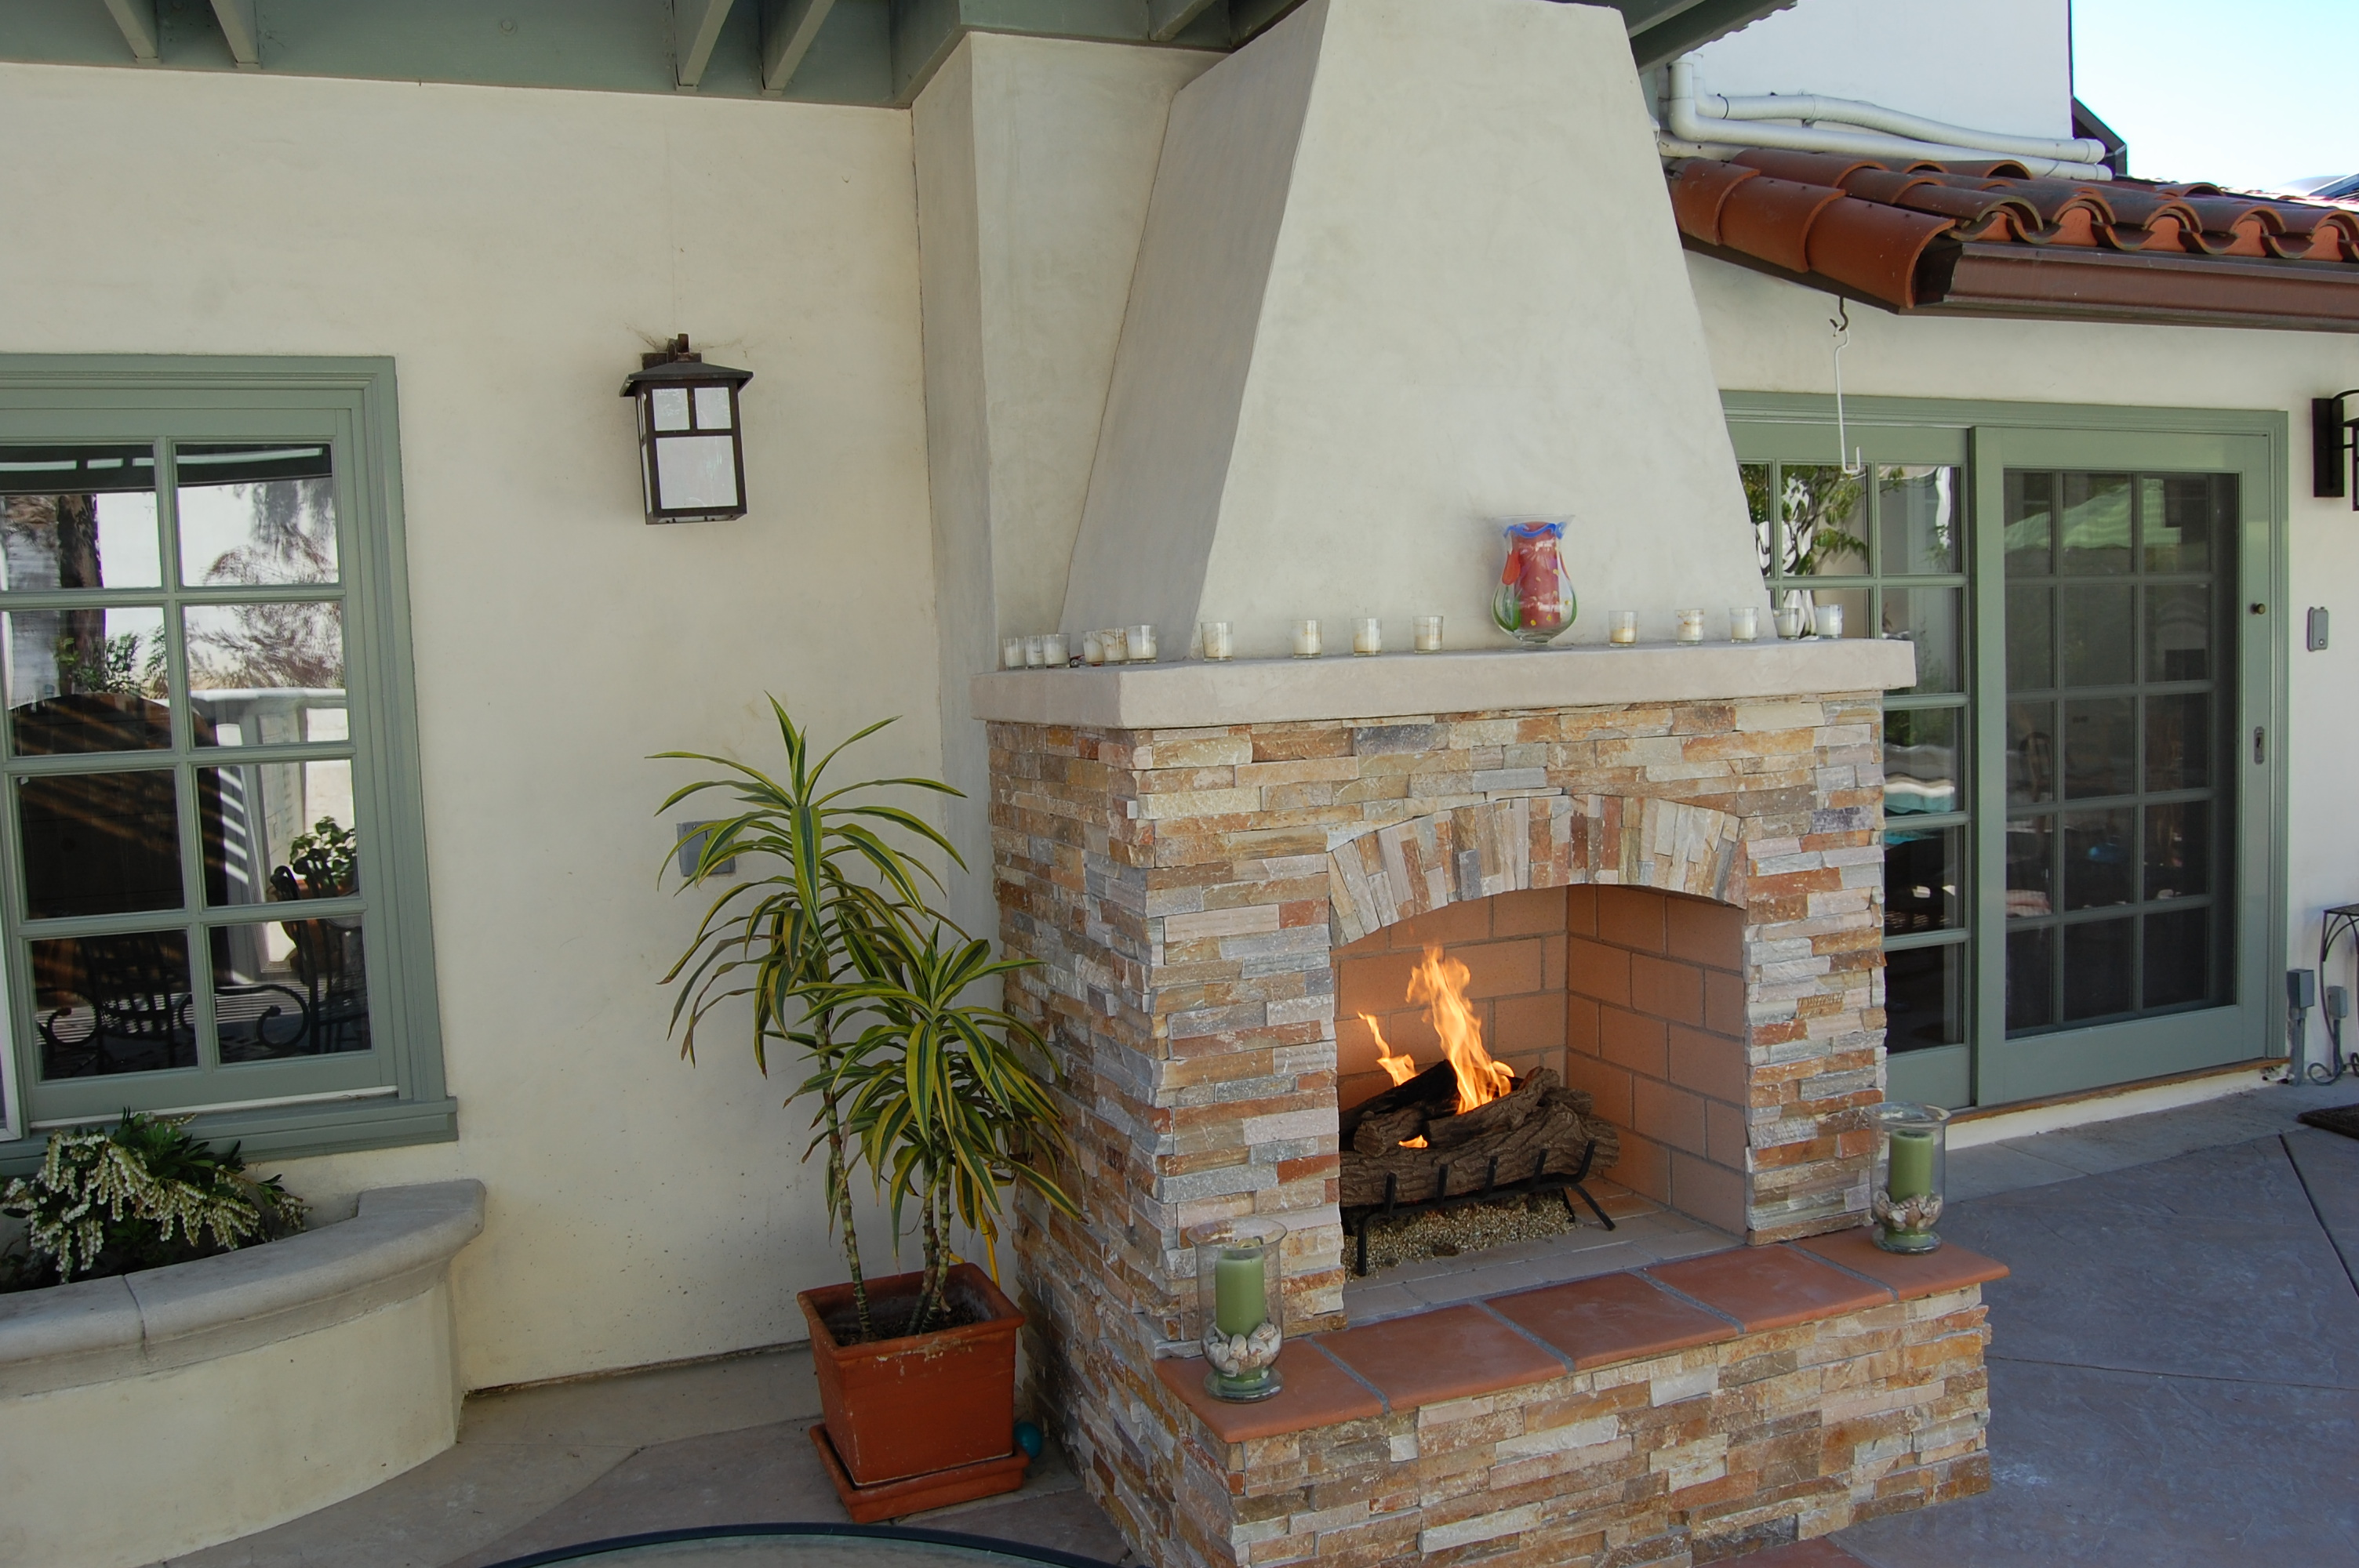 pizza home review oven outdoor uk of tips with kits design fresh and appliances ideas kitchen fireplace